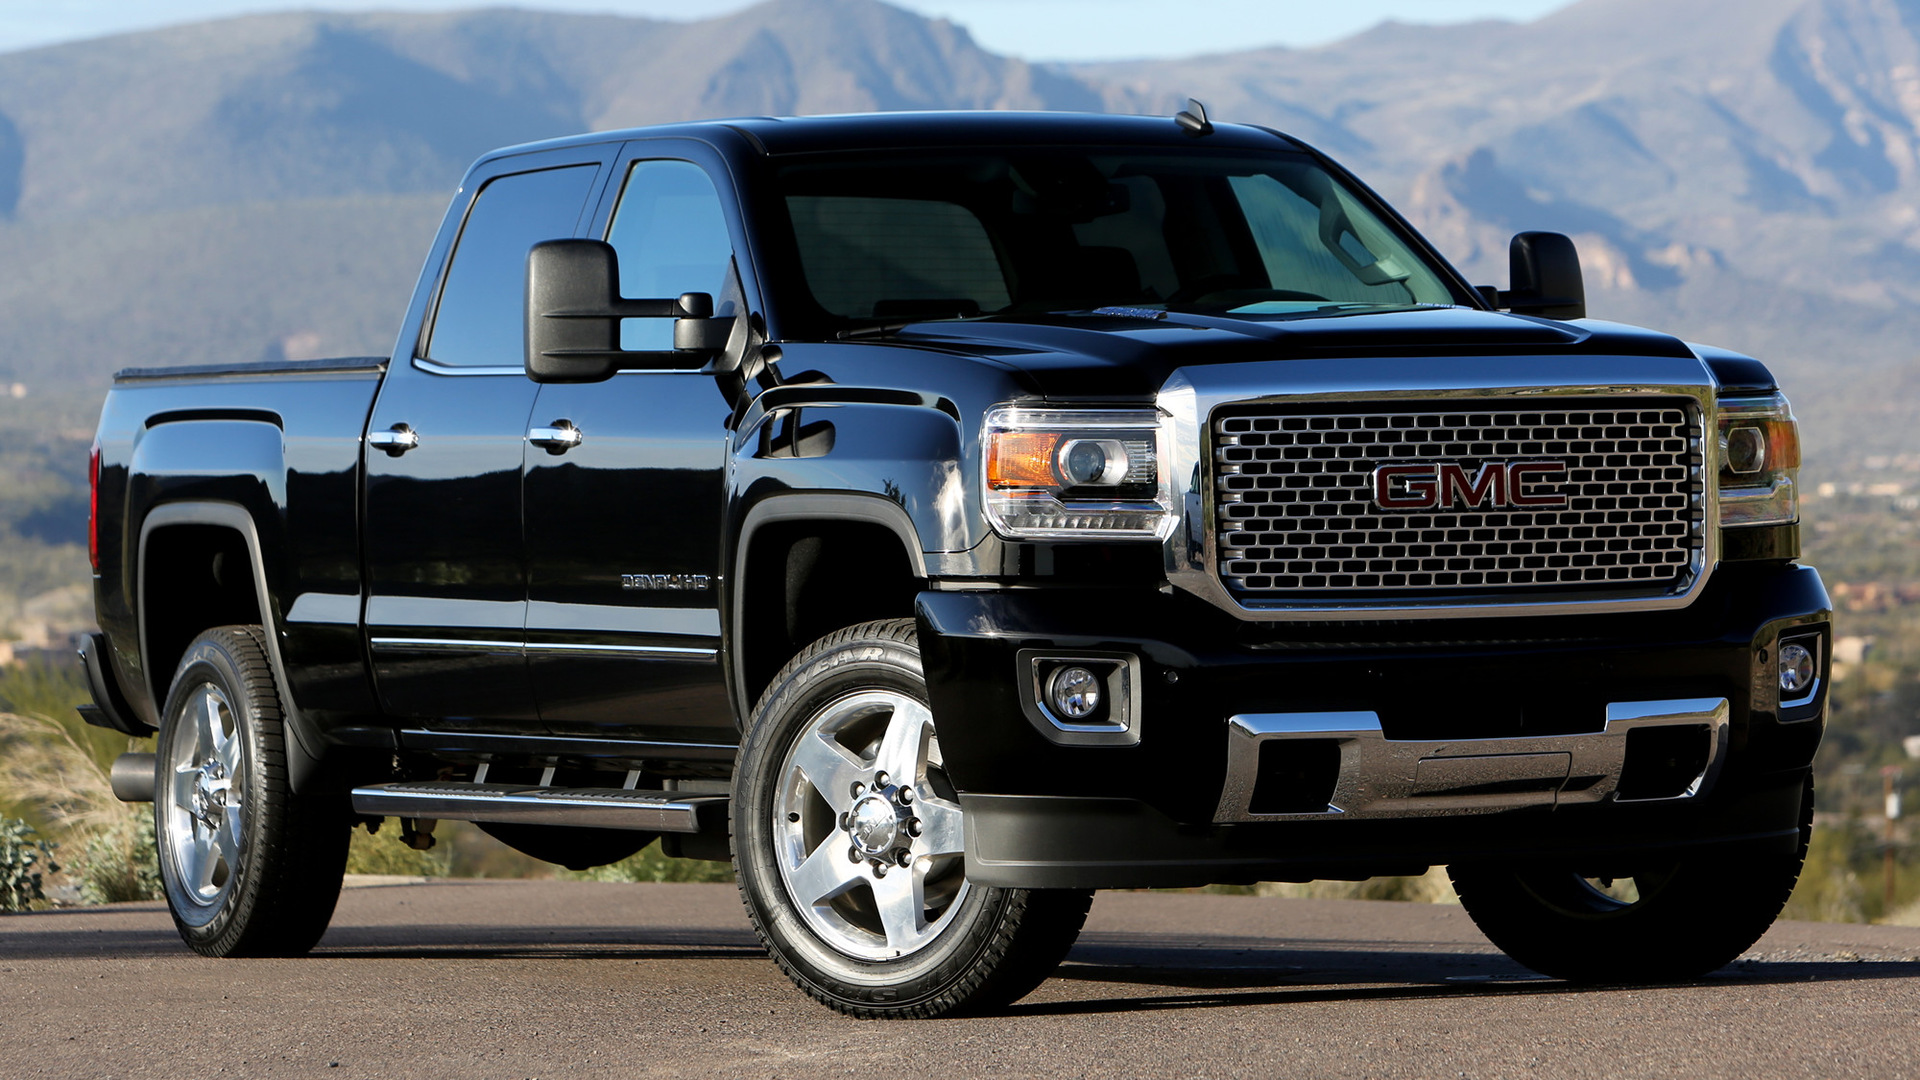 Gmc Sierra Denali 2500 Hd Crew Cab 2015 Wallpapers And